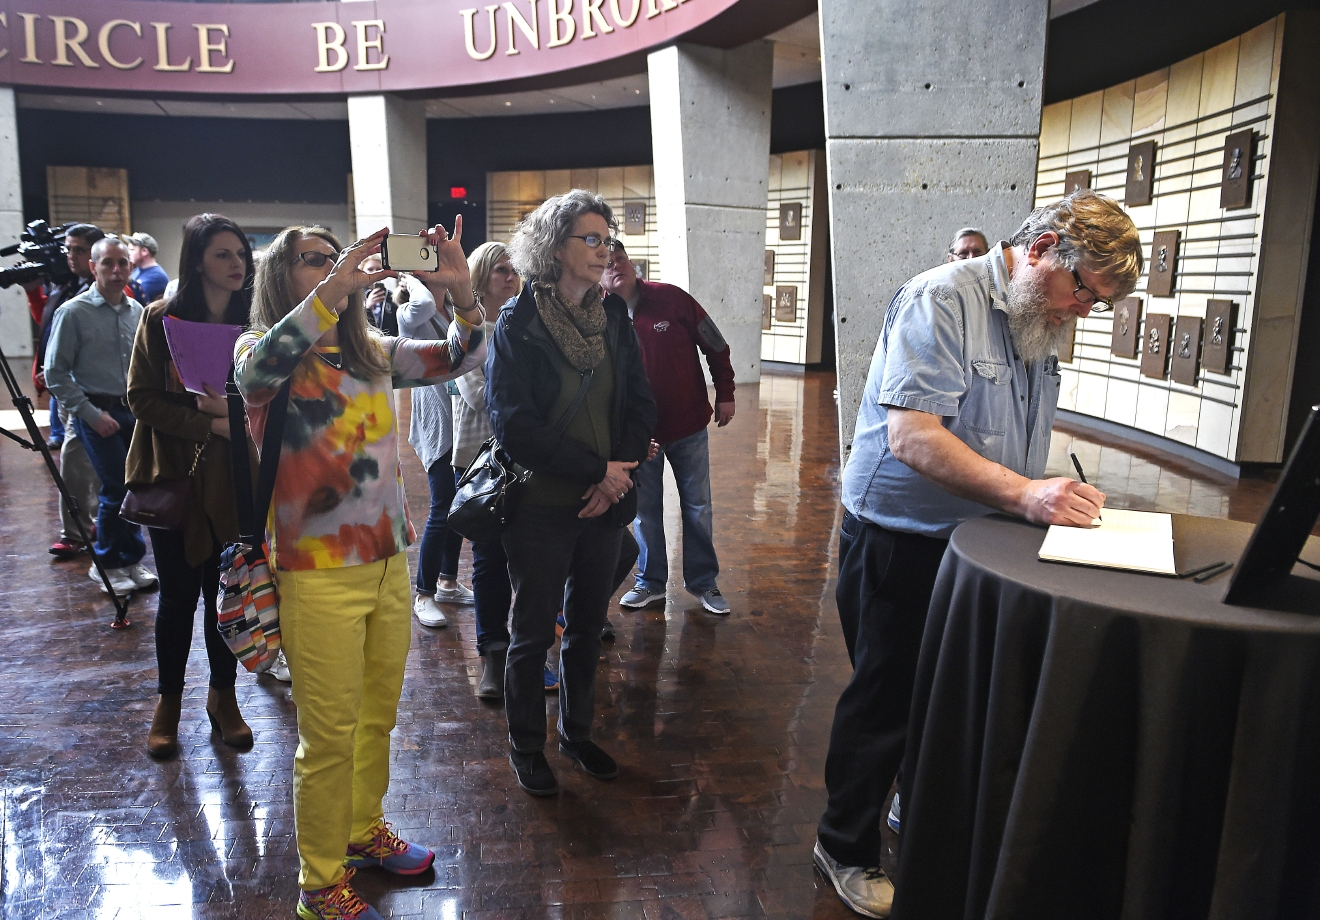 "Robert Grant signs his condolences along with other fans as they visit the plaque of Merle Haggard in the Rotunda Hall at the Country Music Hall of Fame, Wednesday April 6, 2016, in Nashville, Tenn., after learning of his death. Haggard, who rose from poverty and prison to international fame through his songs about outlaws, underdogs and an abiding sense of national pride in such hits as ""Okie From Muskogee"" and ""Sing Me Back Home,"" died Wednesday at 79, on his birthday. (Larry McCormack/The Tennessean via AP) NO SALES; MANDATORY CREDIT"